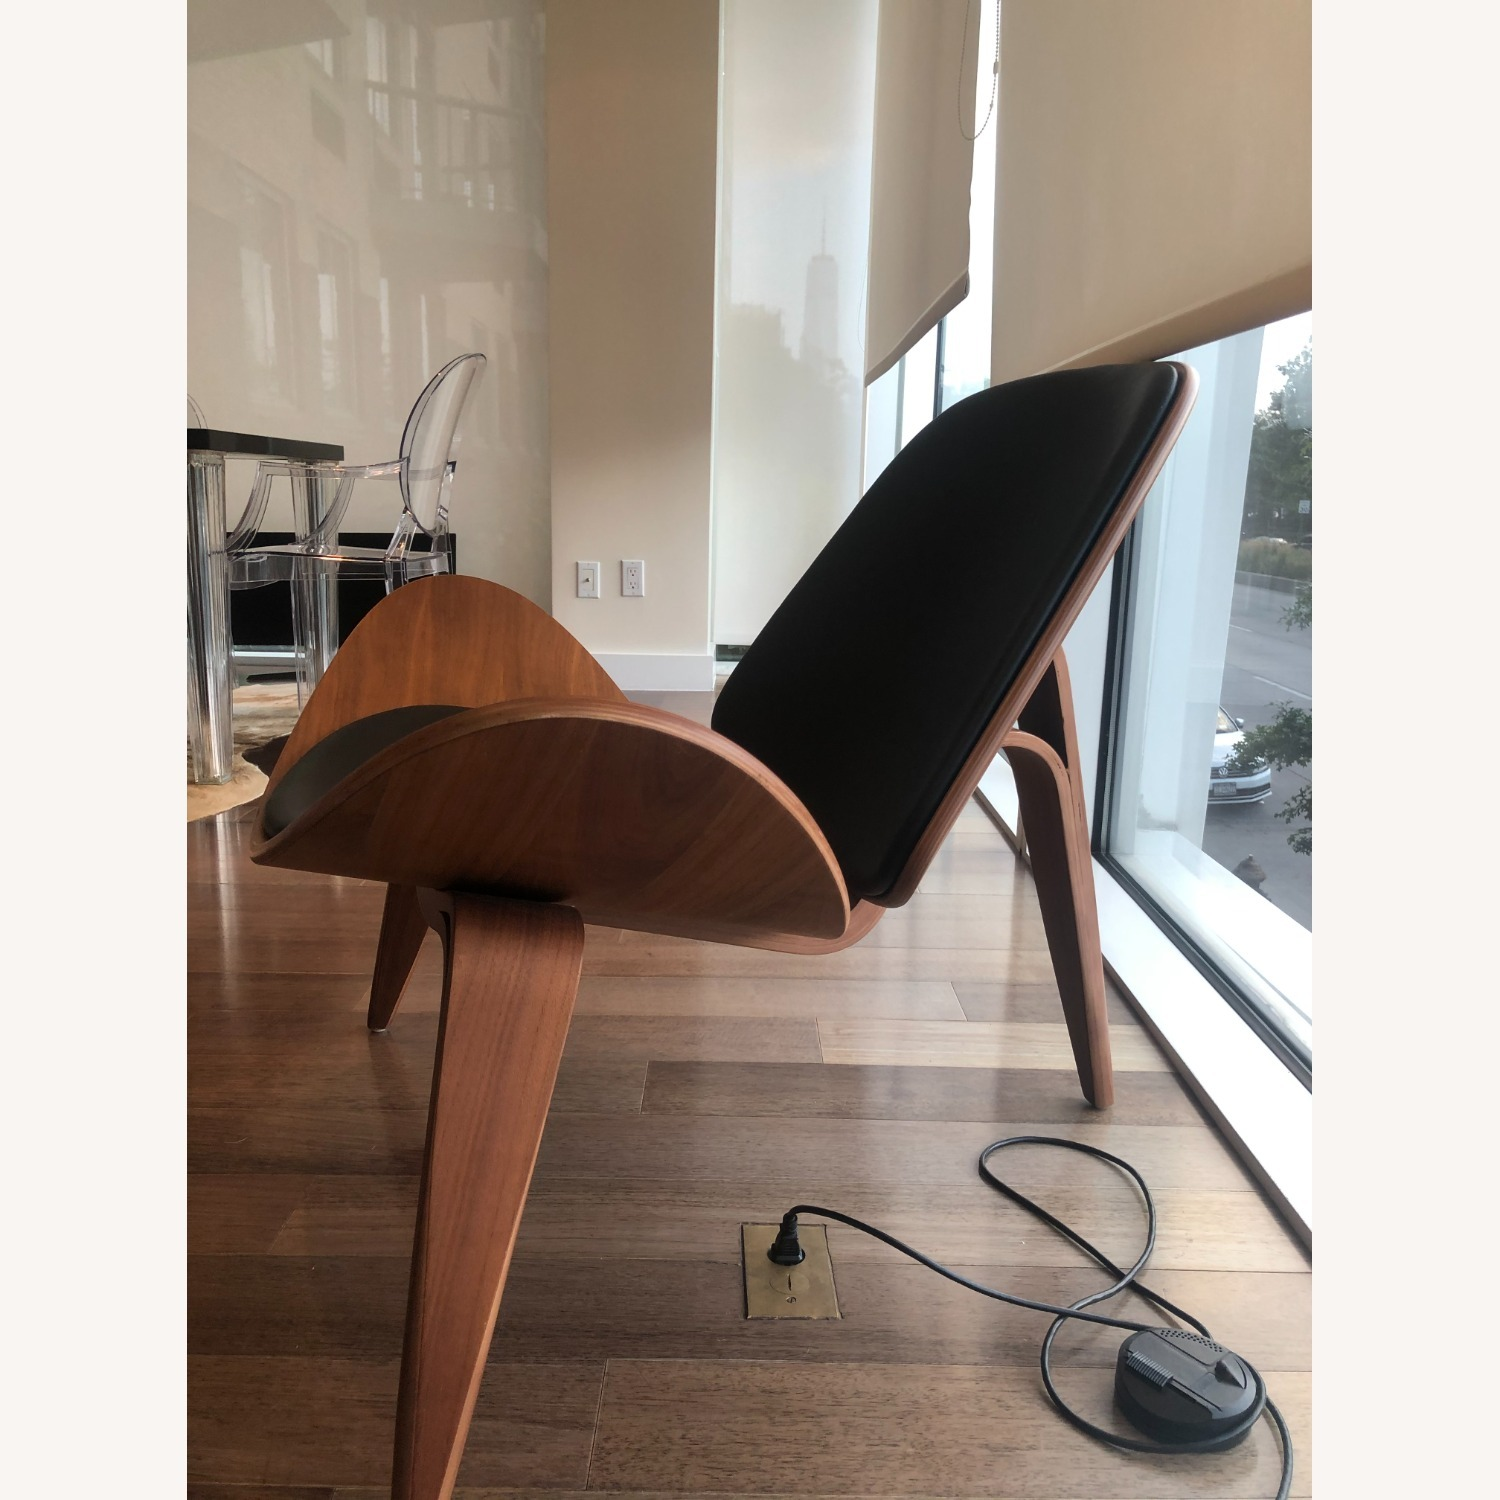 Sit Down New York Mitre Walnut and Black Leather Chair - image-5